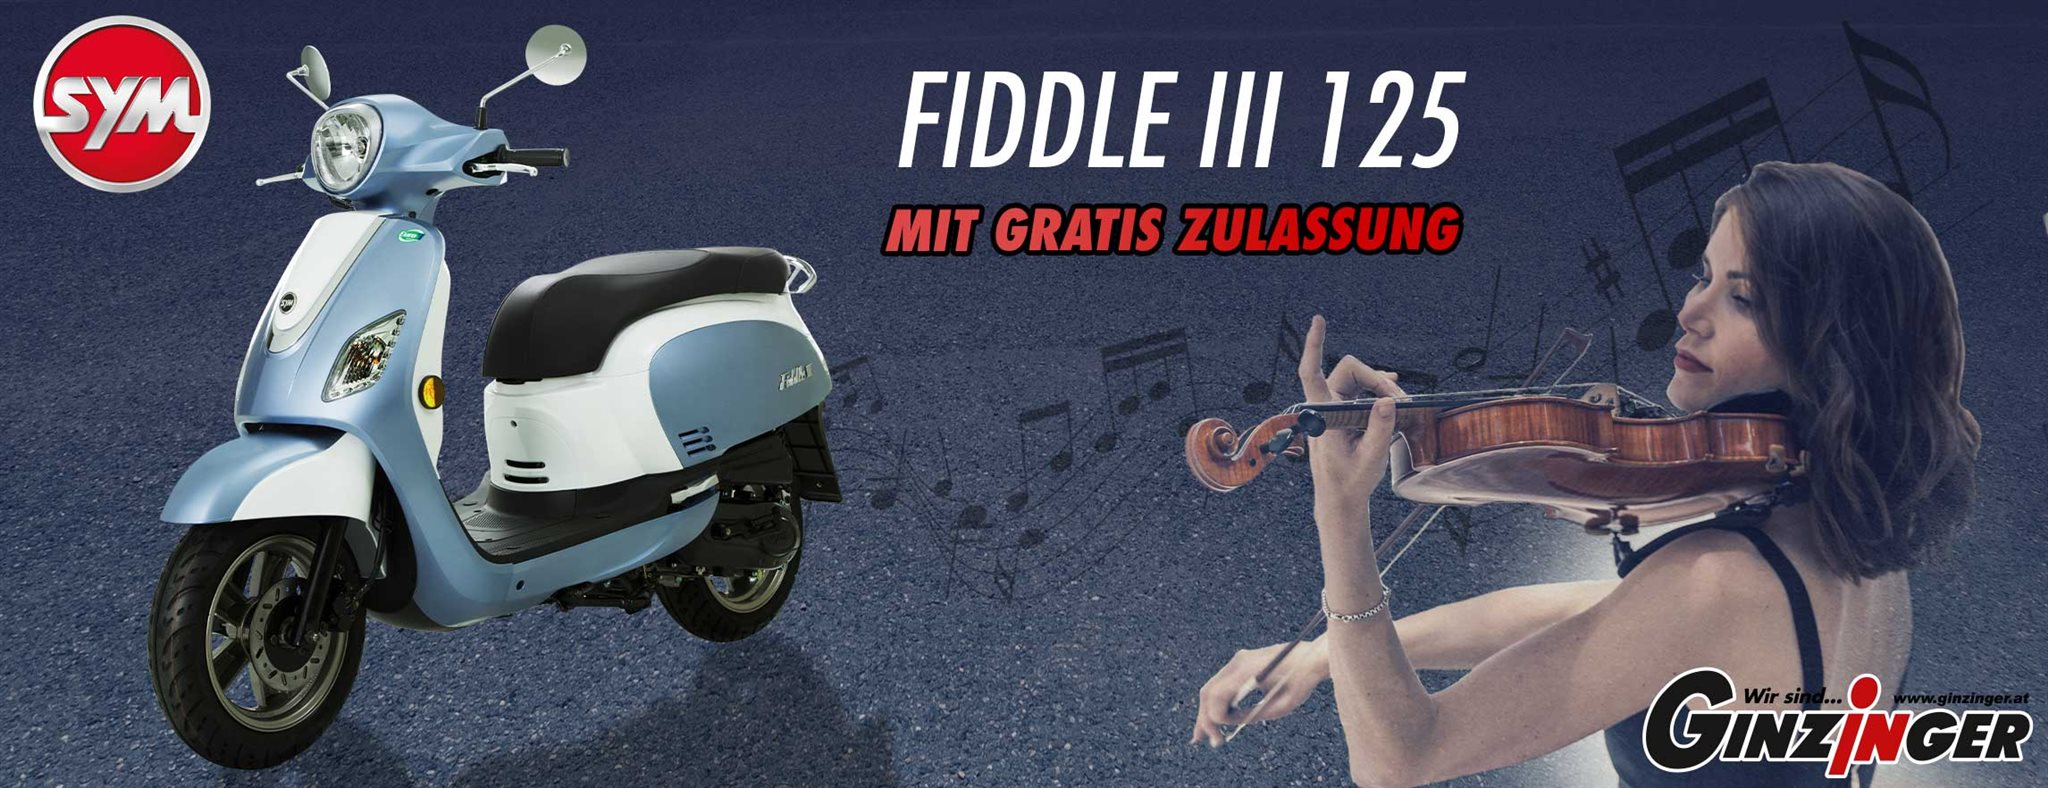 SYM Fiddle III 125